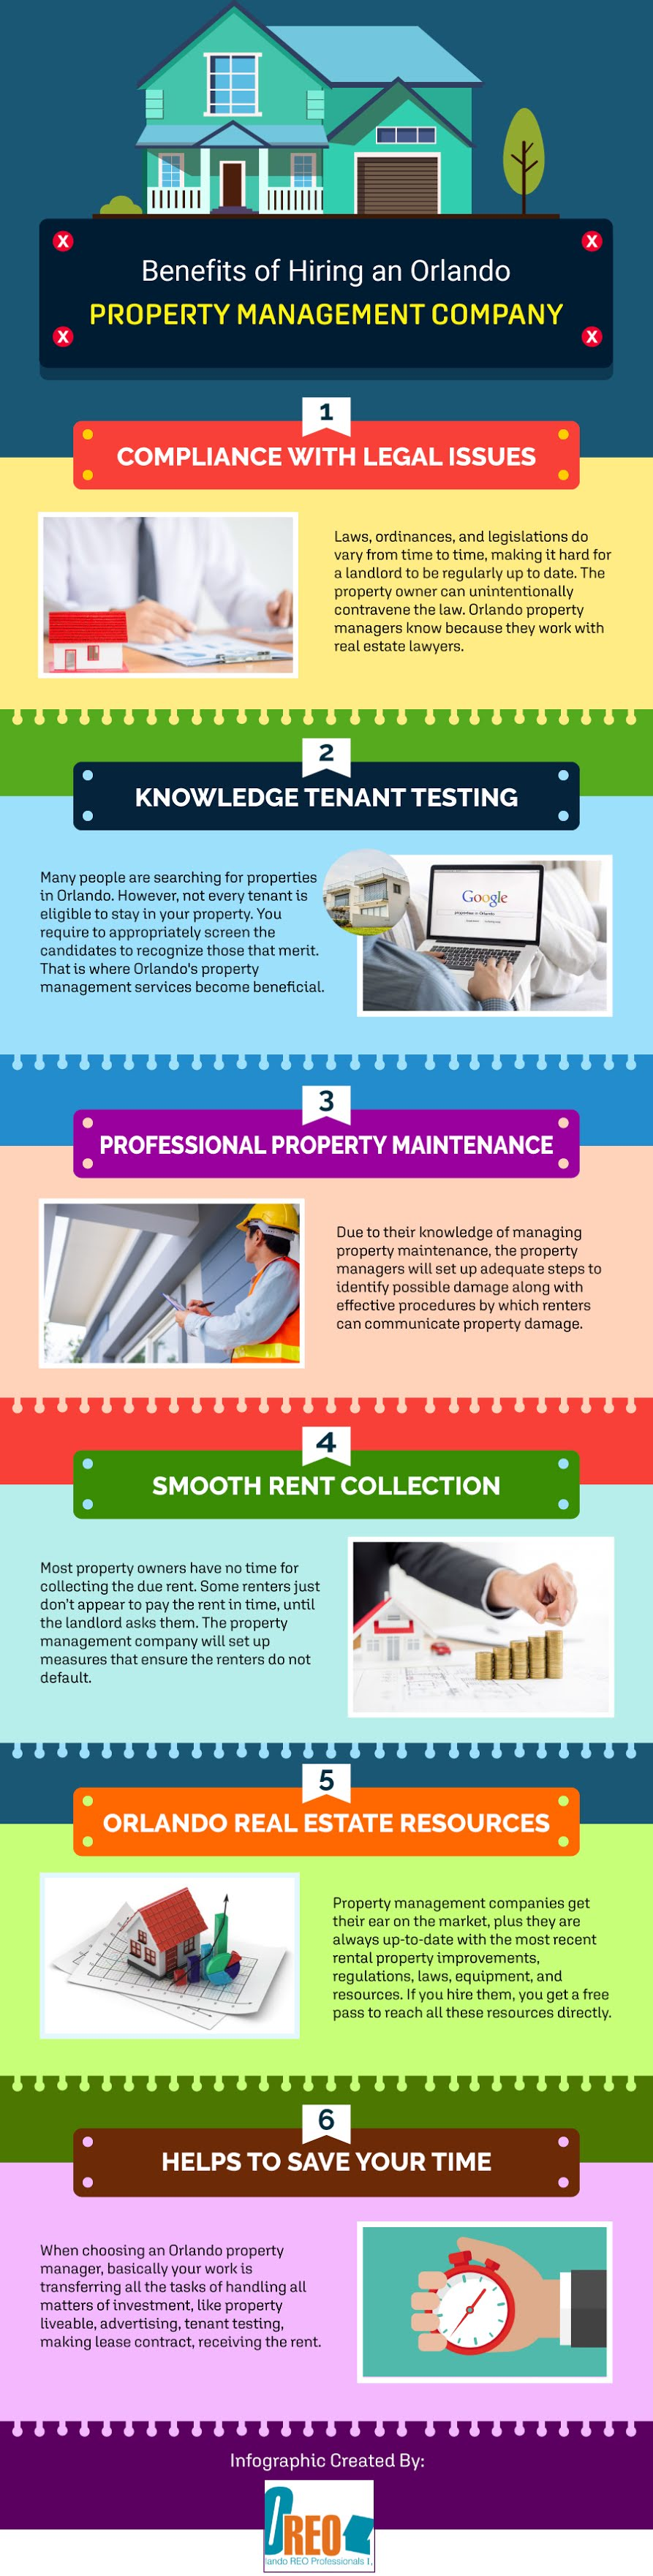 Benefits of Hiring an Orlando Property Management Company [Infographic]